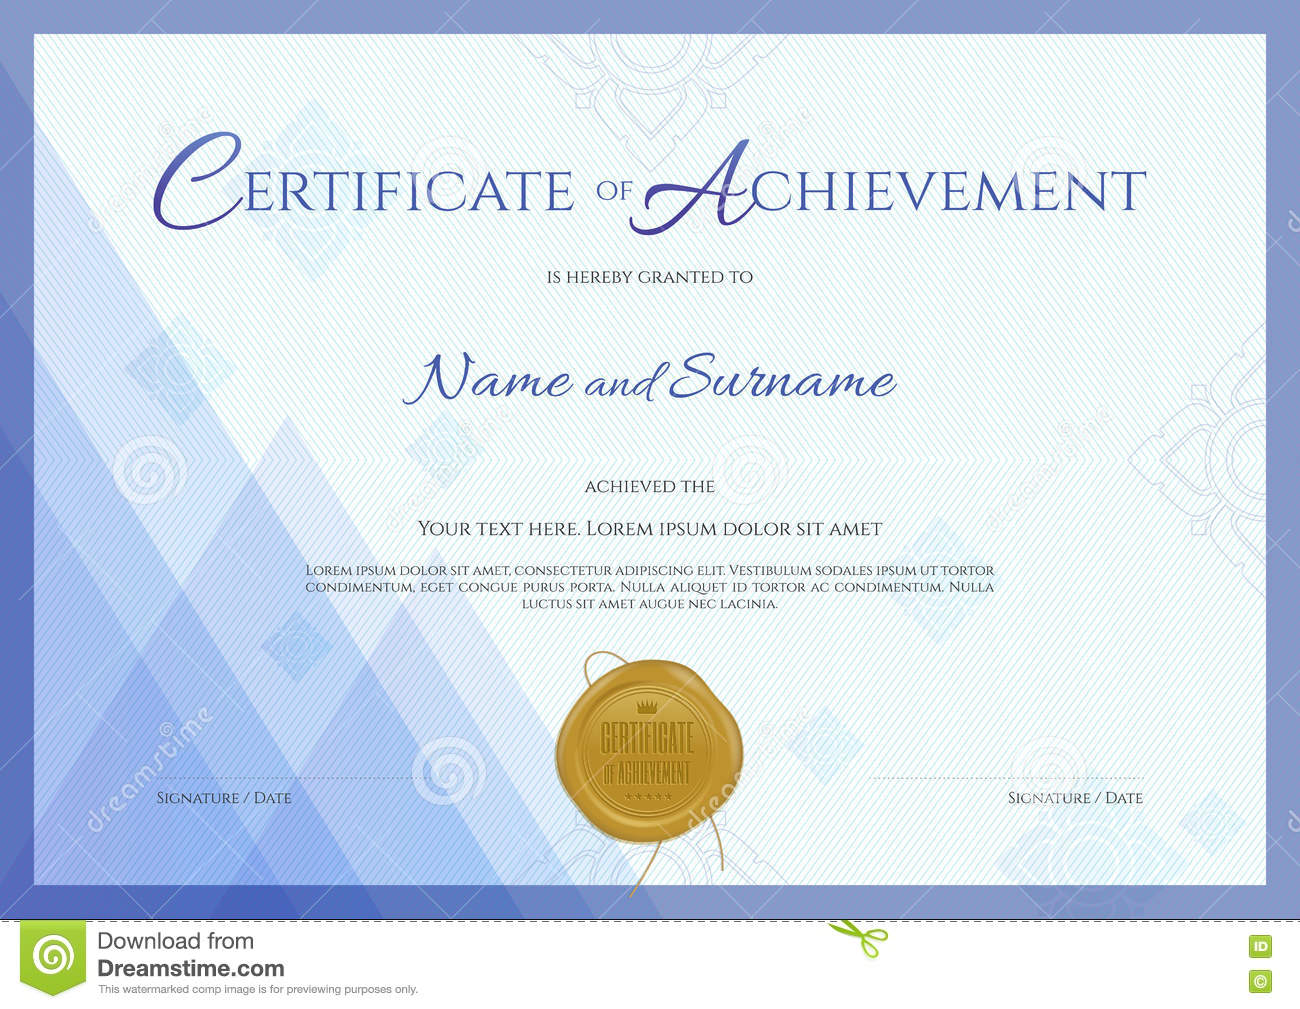 Certificate Of Achievement Template With Blue Theme Background  Free Certificate Of Achievement